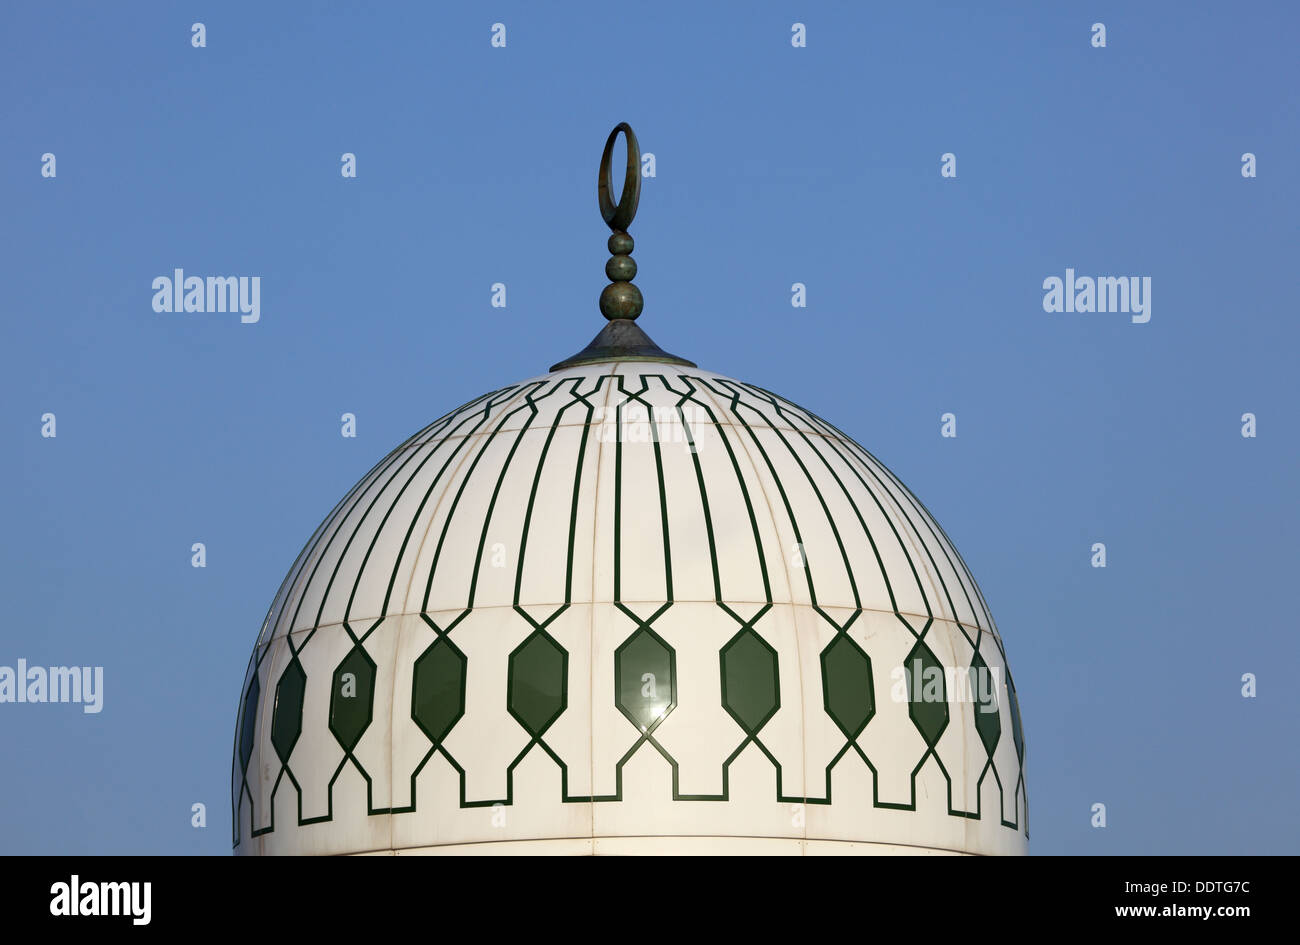 Cupola of the King Fahad mosque in Gibraltar - Stock Image